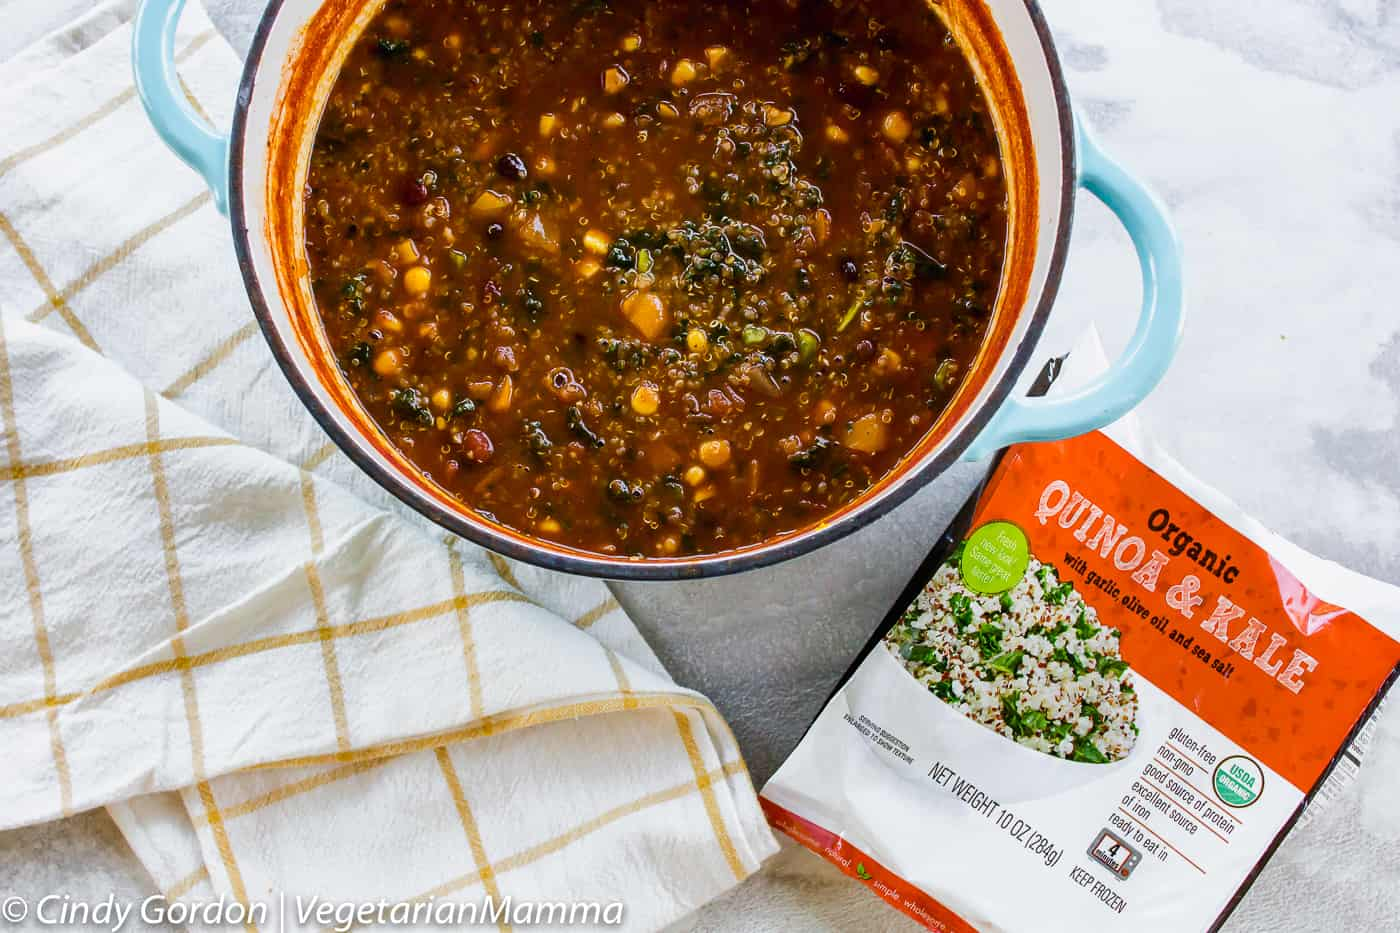 Pot of Vegetarian Pumpkin Chili with Quinoa and box of Path of Life Kale and Quinoa.